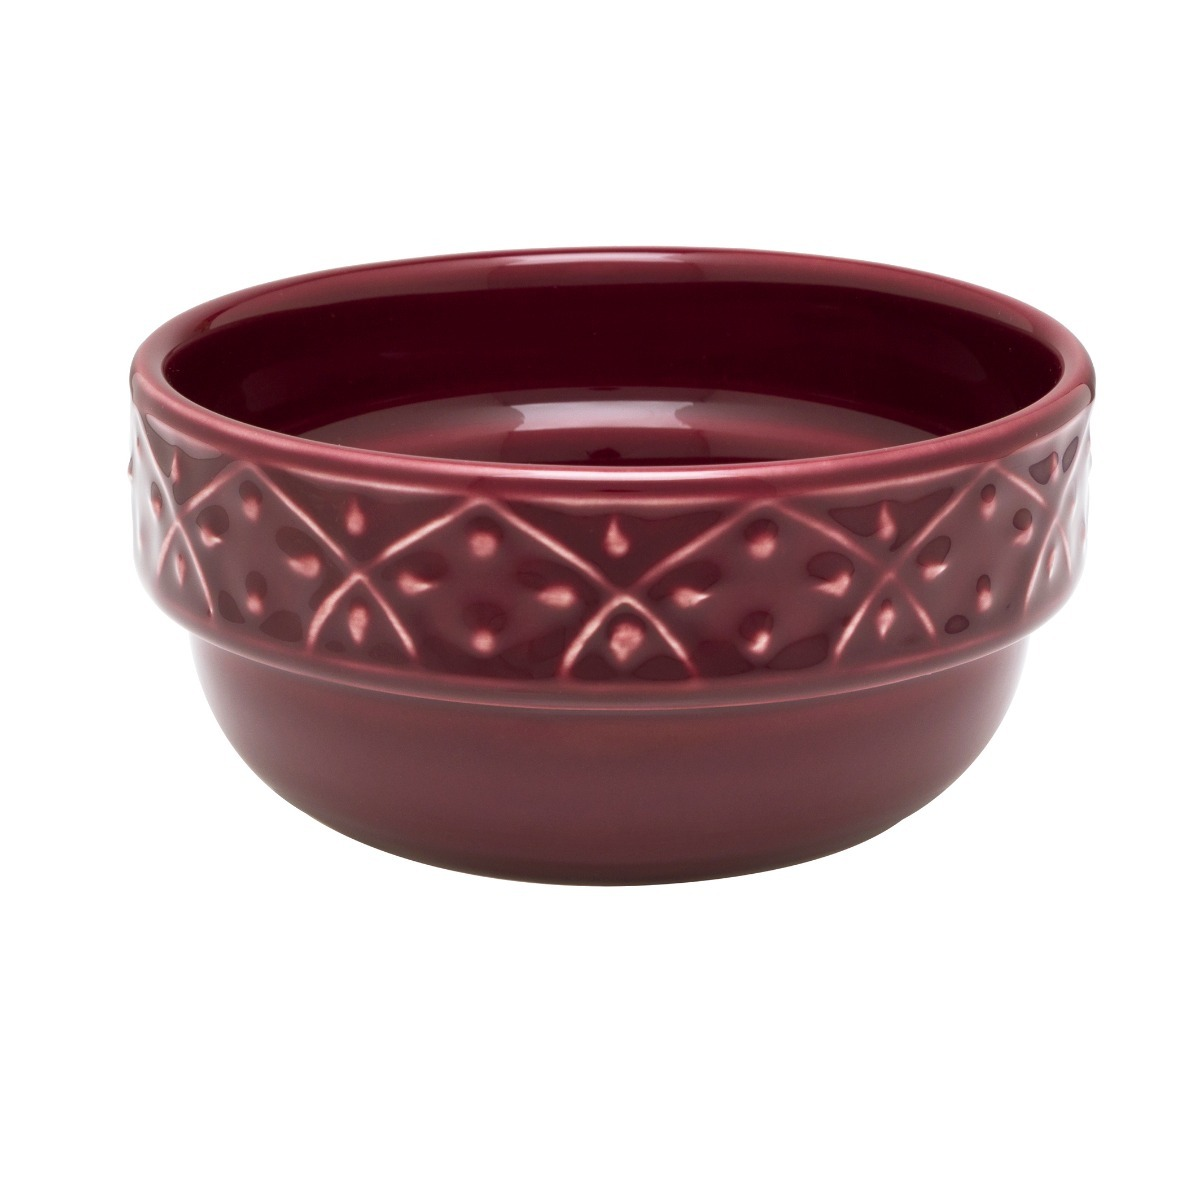 Bowl Compotera Cazuela Ceramica Oxford Corvina Bordo Relieve